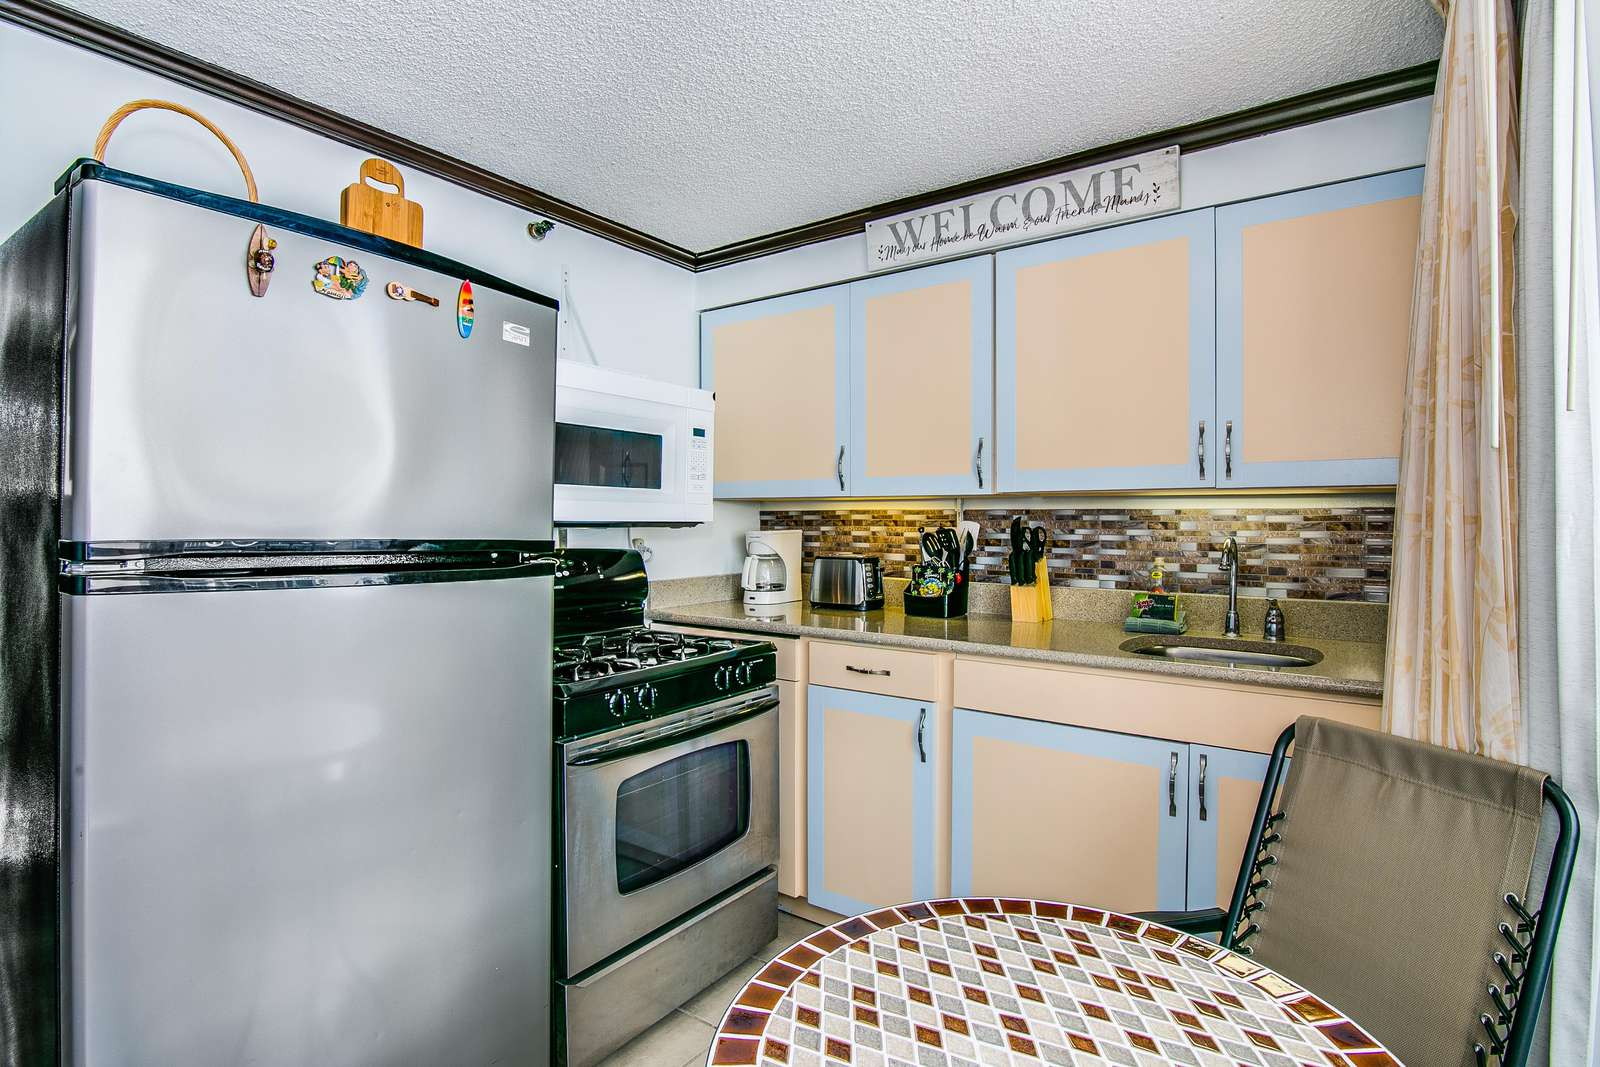 Full kitchen with large fridge and oven etc.